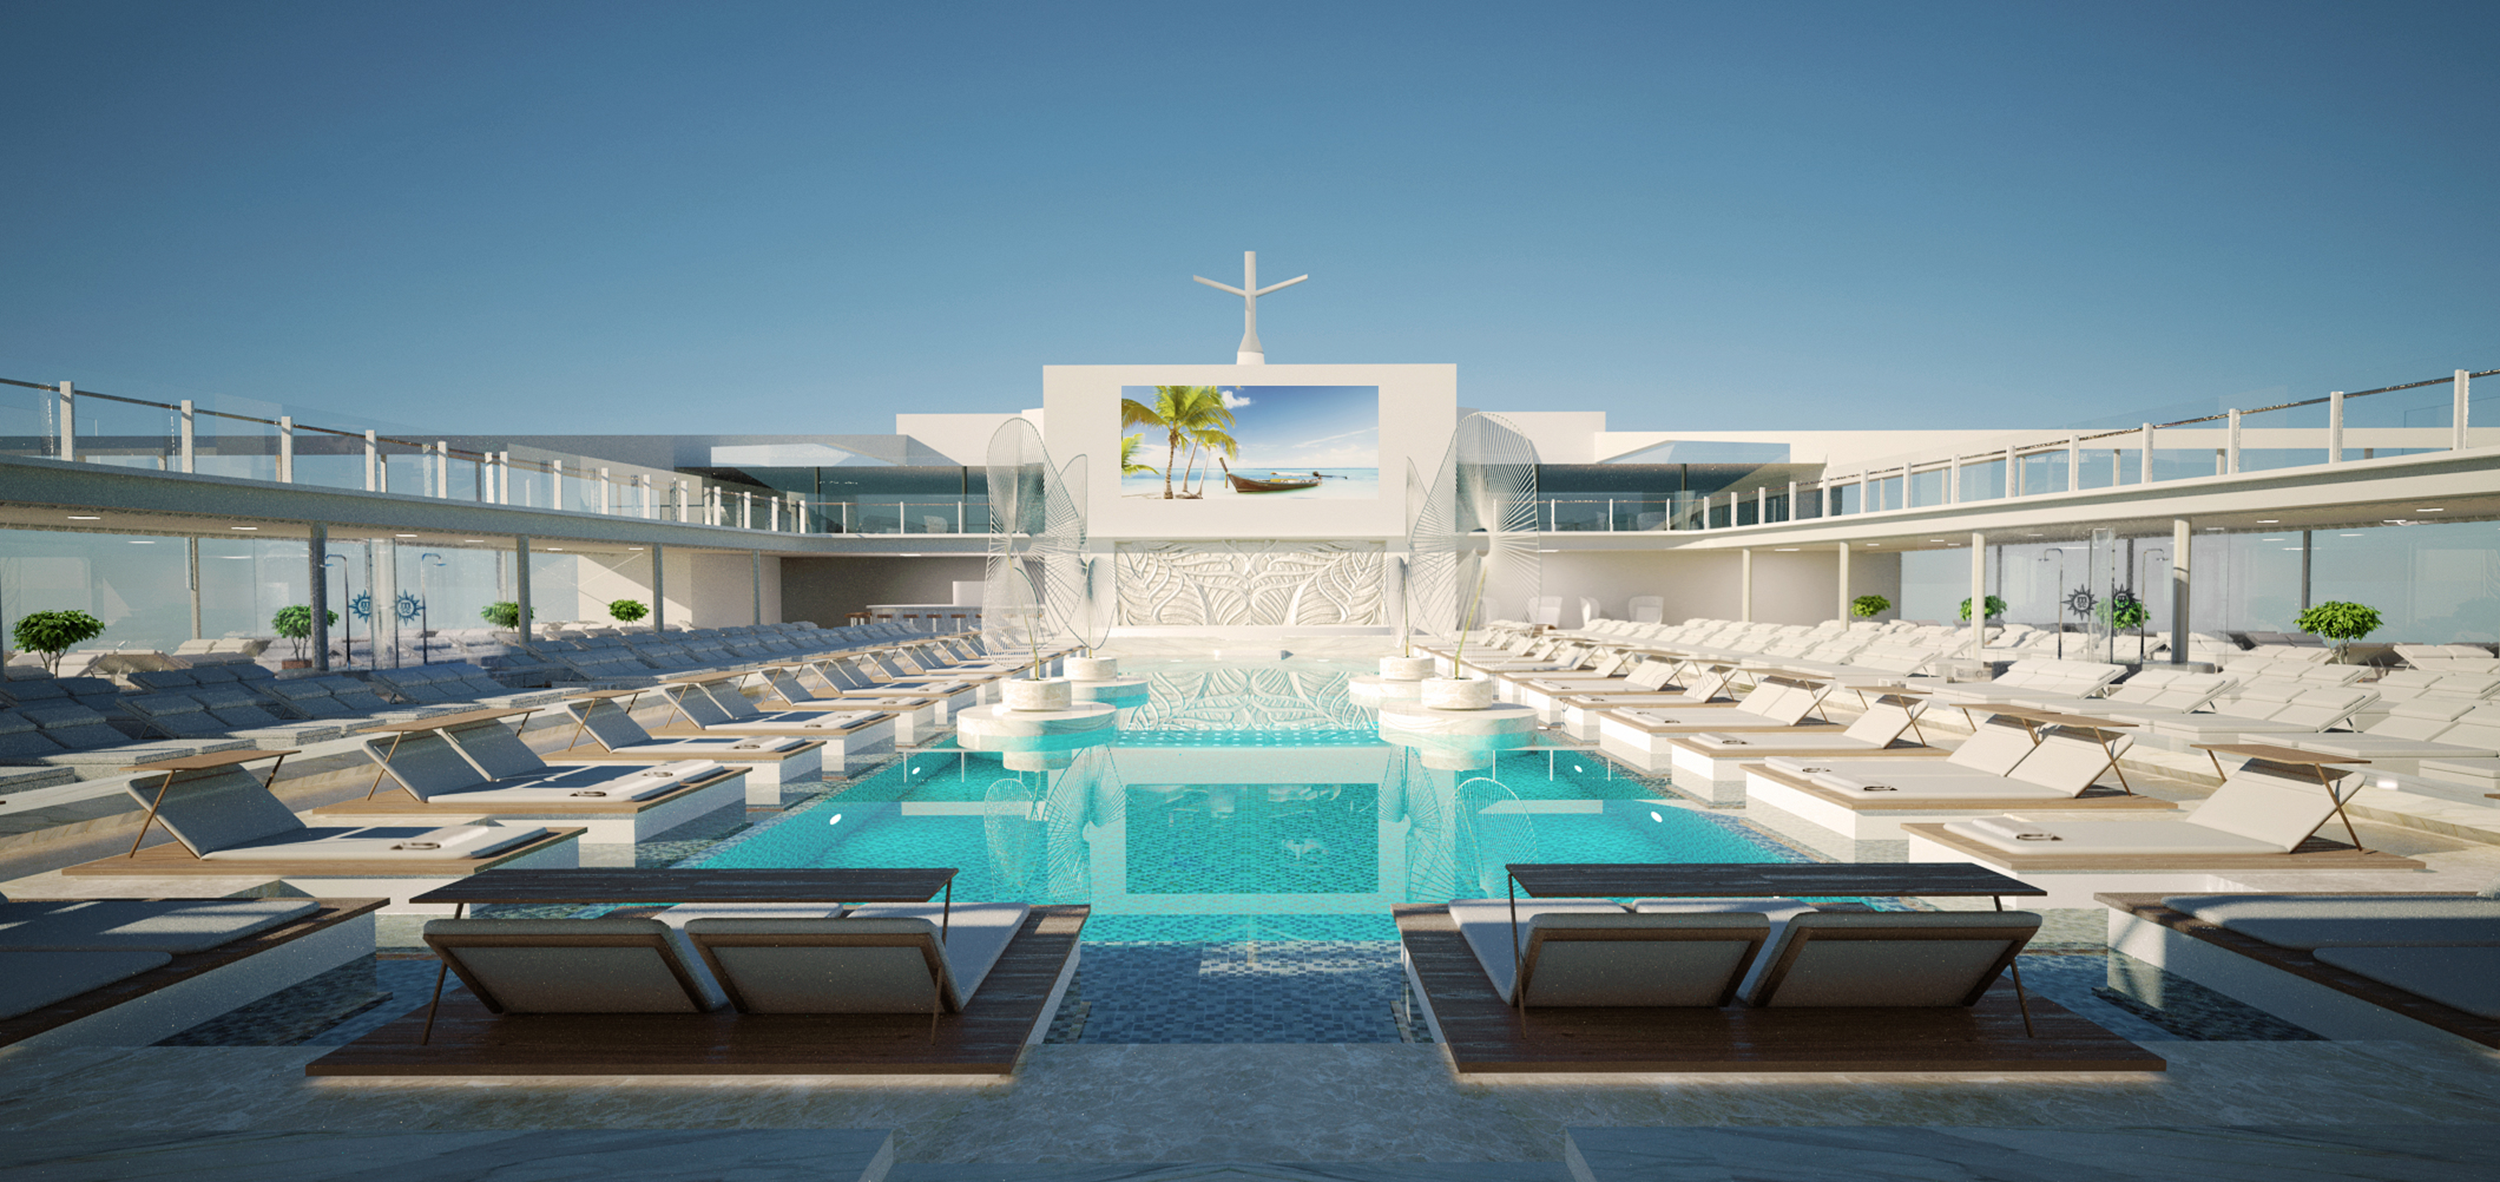 The main pool, MSC Meraviglia